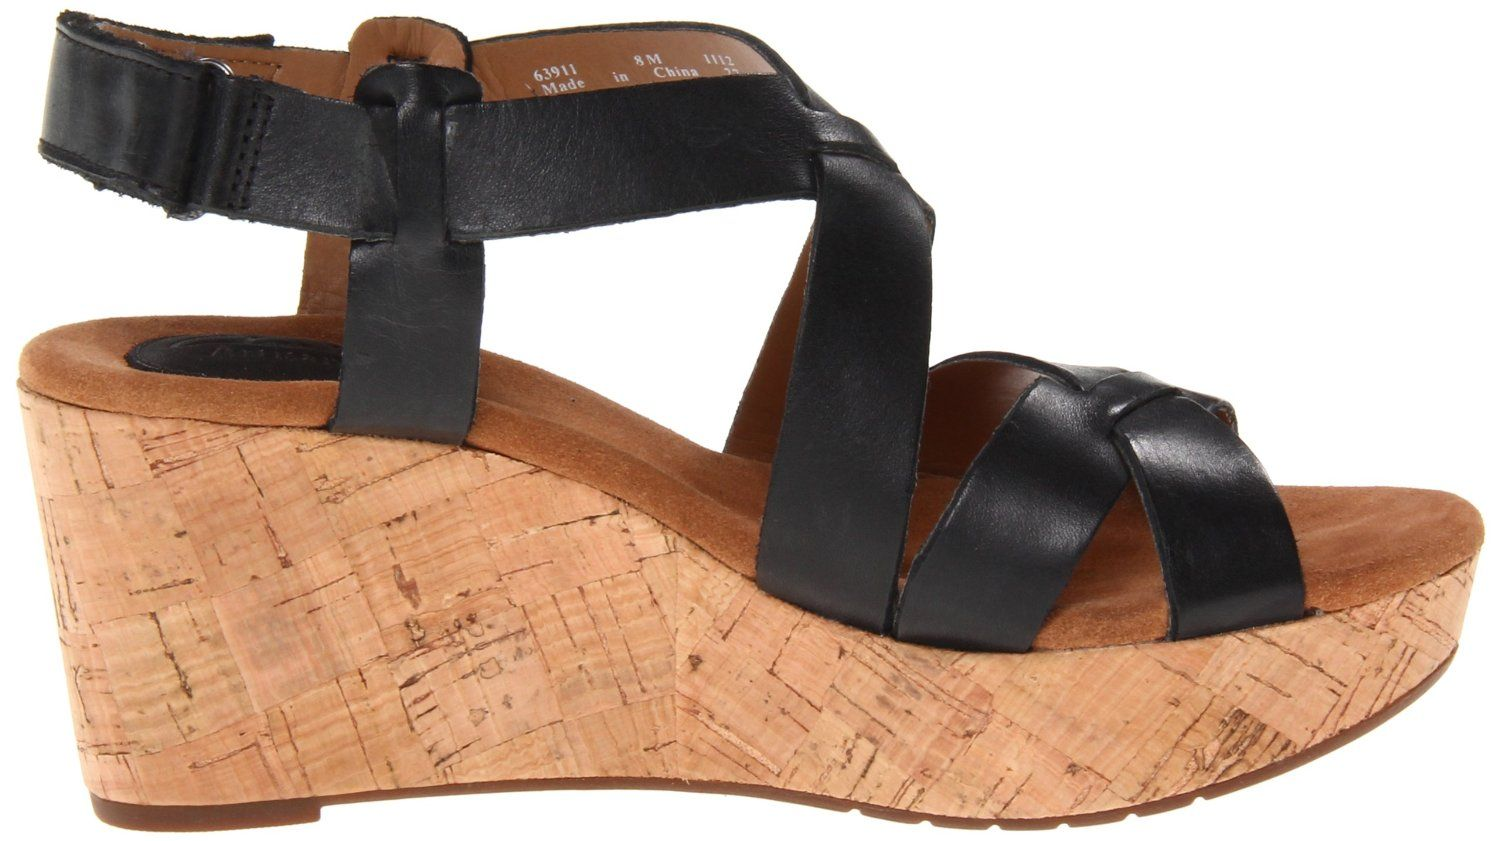 5fc364eeb391 Amazon.com  Clarks Women s Casylynn Cheryl Wedge Sandal  Shoes ...